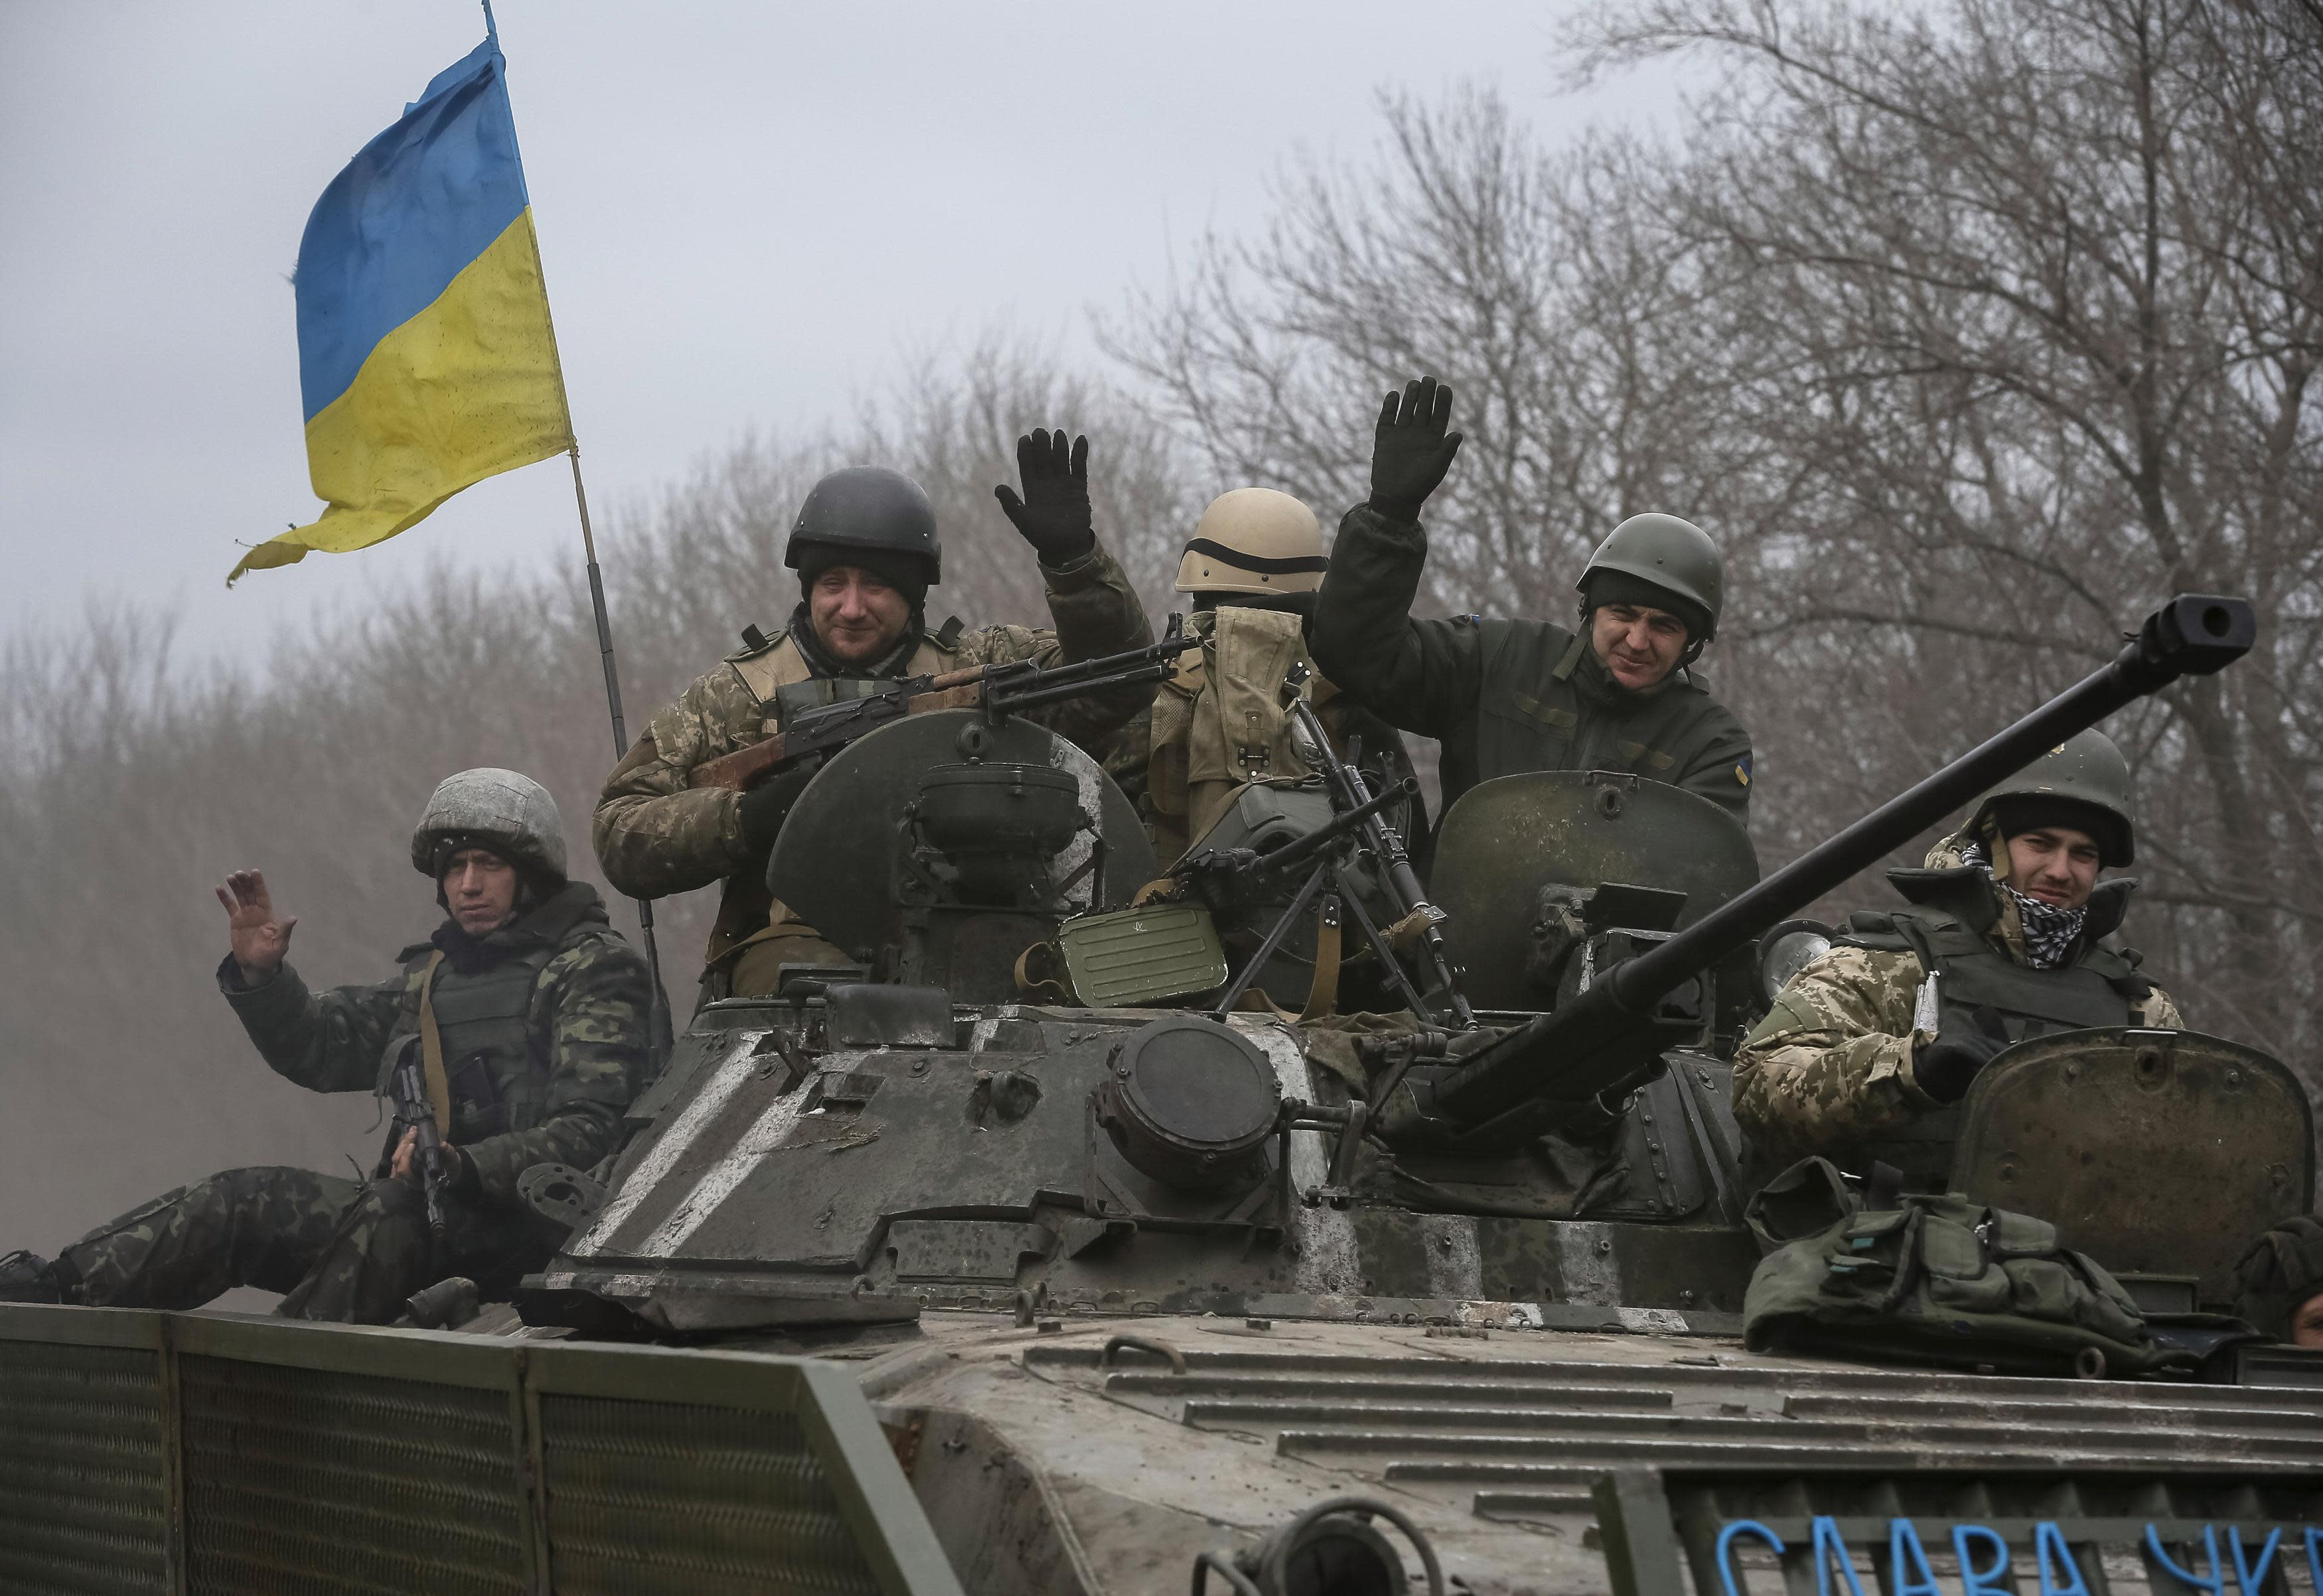 Members of the Ukrainian armed forces ride an armoured personnel carrier near Debaltseve, eastern Ukraine, February 20, 2015. Fighting persisted in east Ukraine on Friday despite new European efforts to ensure a ceasefire takes hold. REUTERS/Gleb Garanich (UKRAINE - Tags: POLITICS CIVIL UNREST MILITARY CONFLICT)